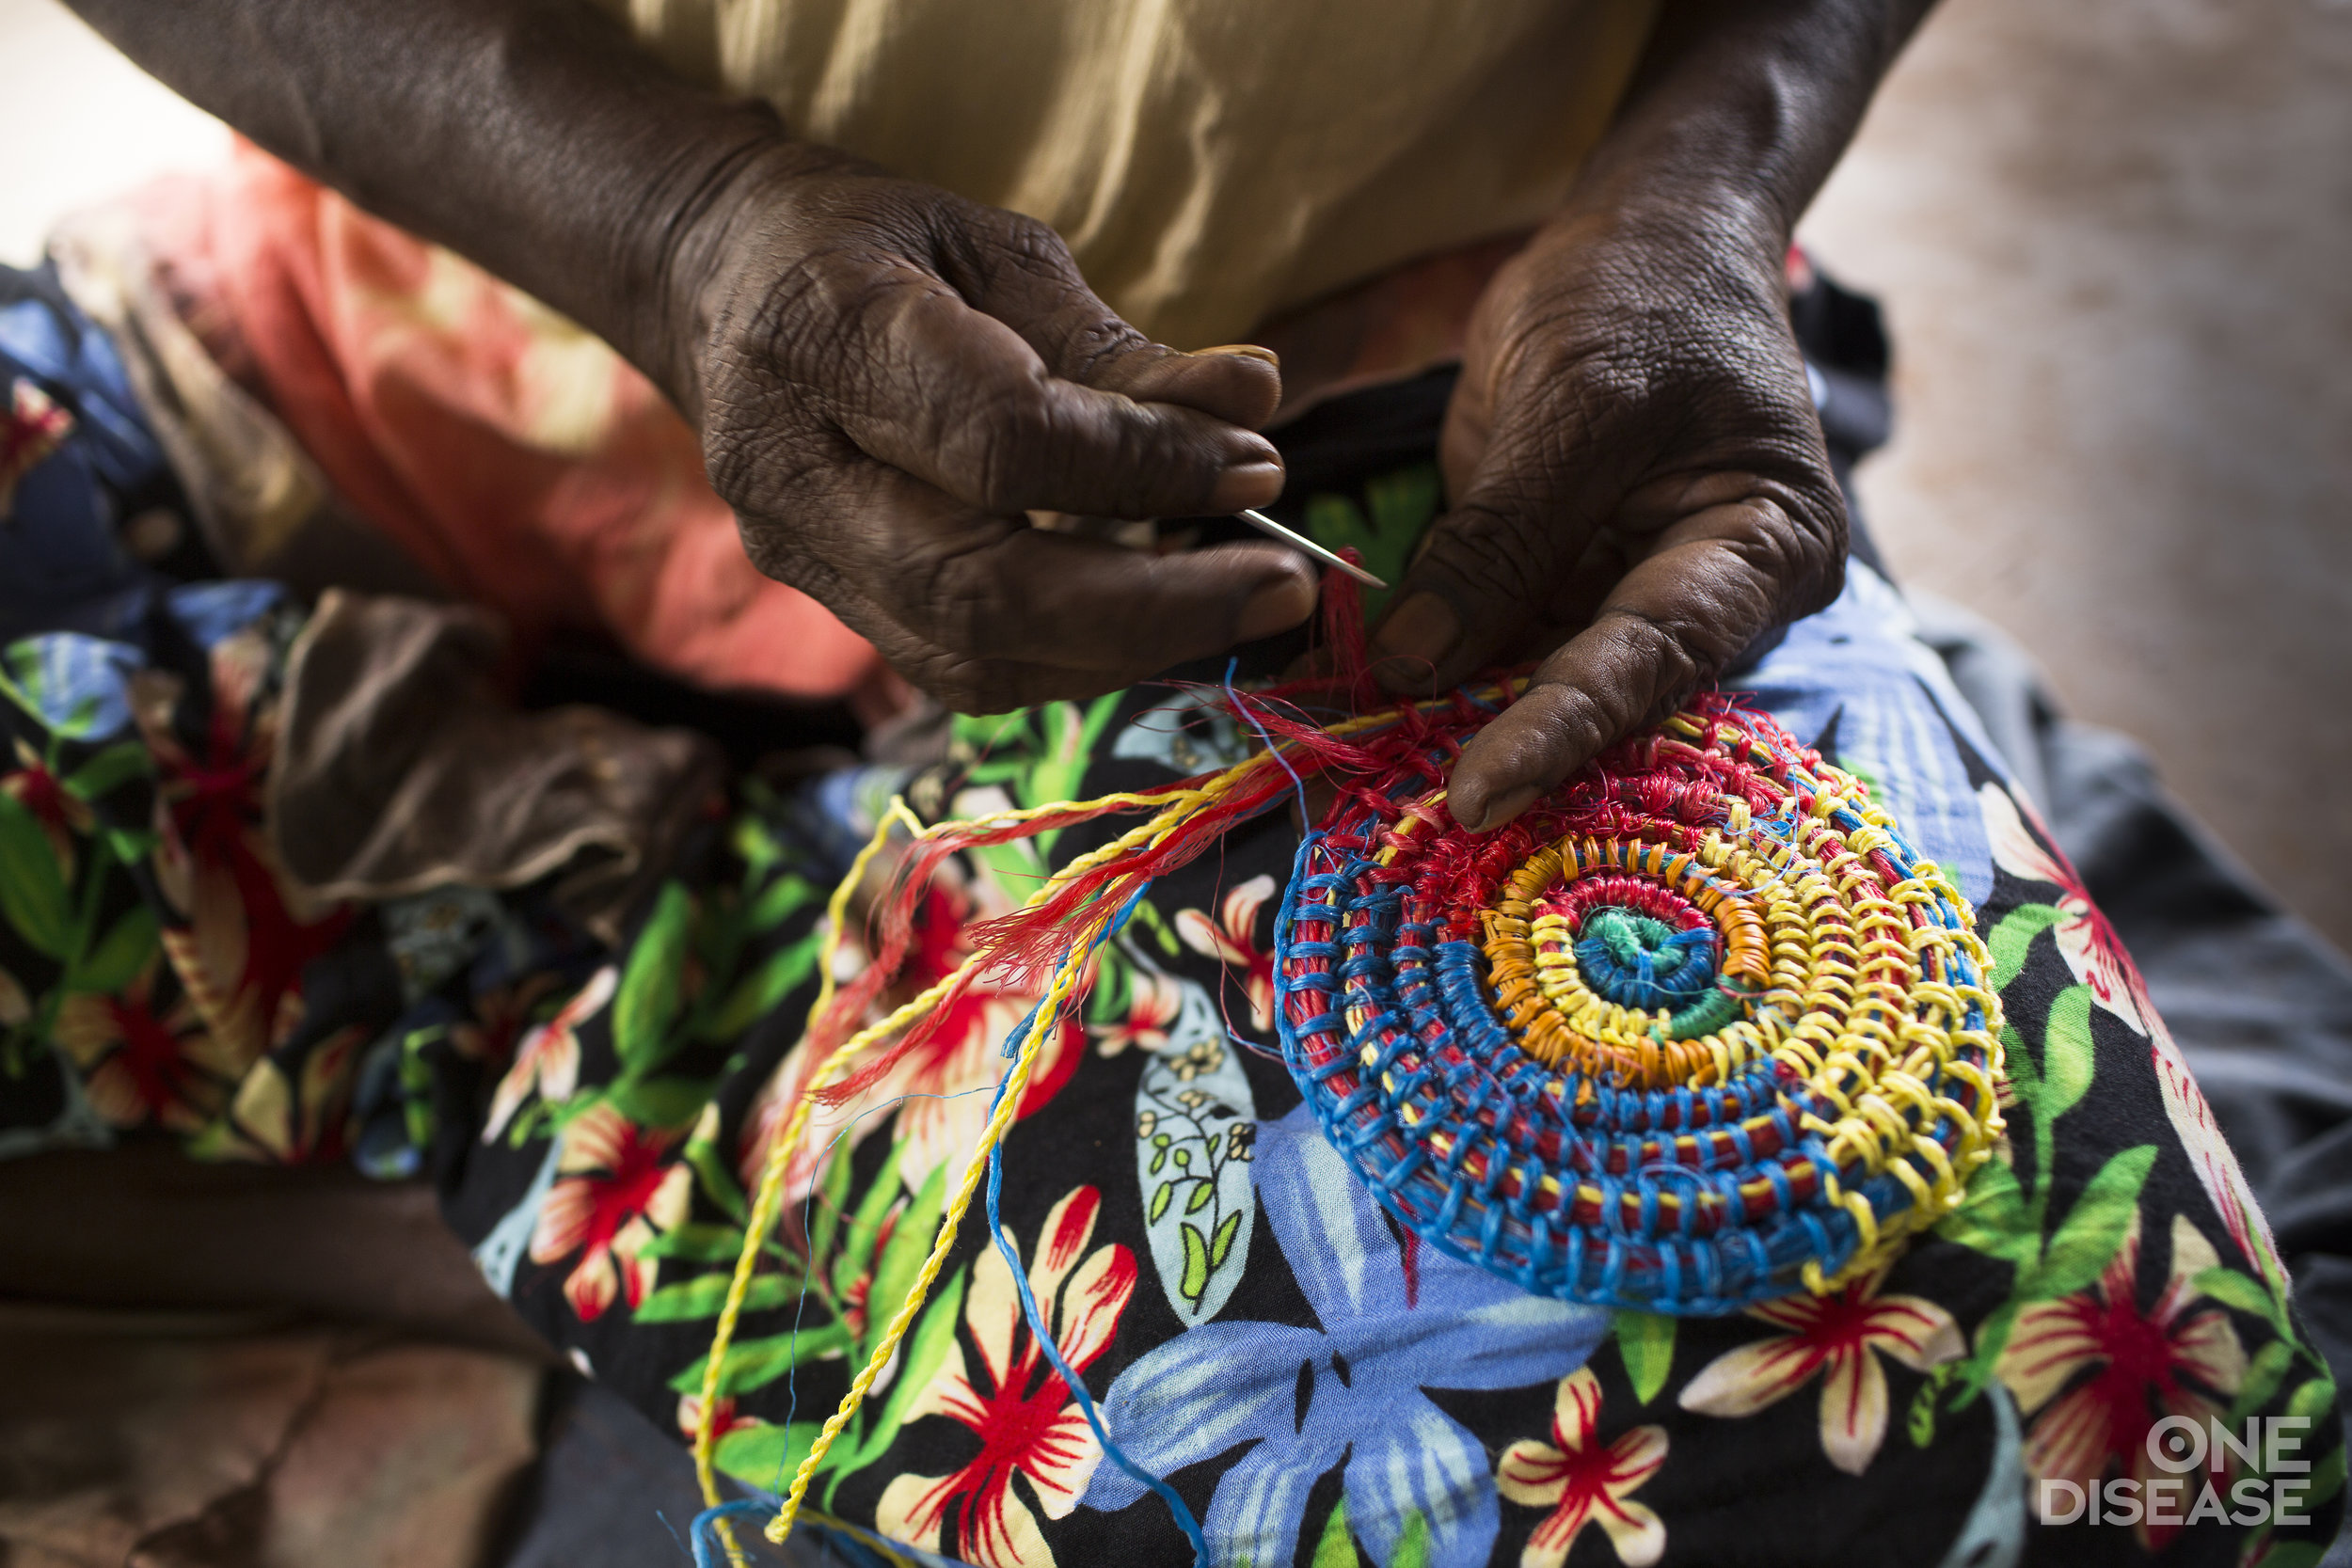 © One Disease_Laklak weaving basket Yirrkala.jpg